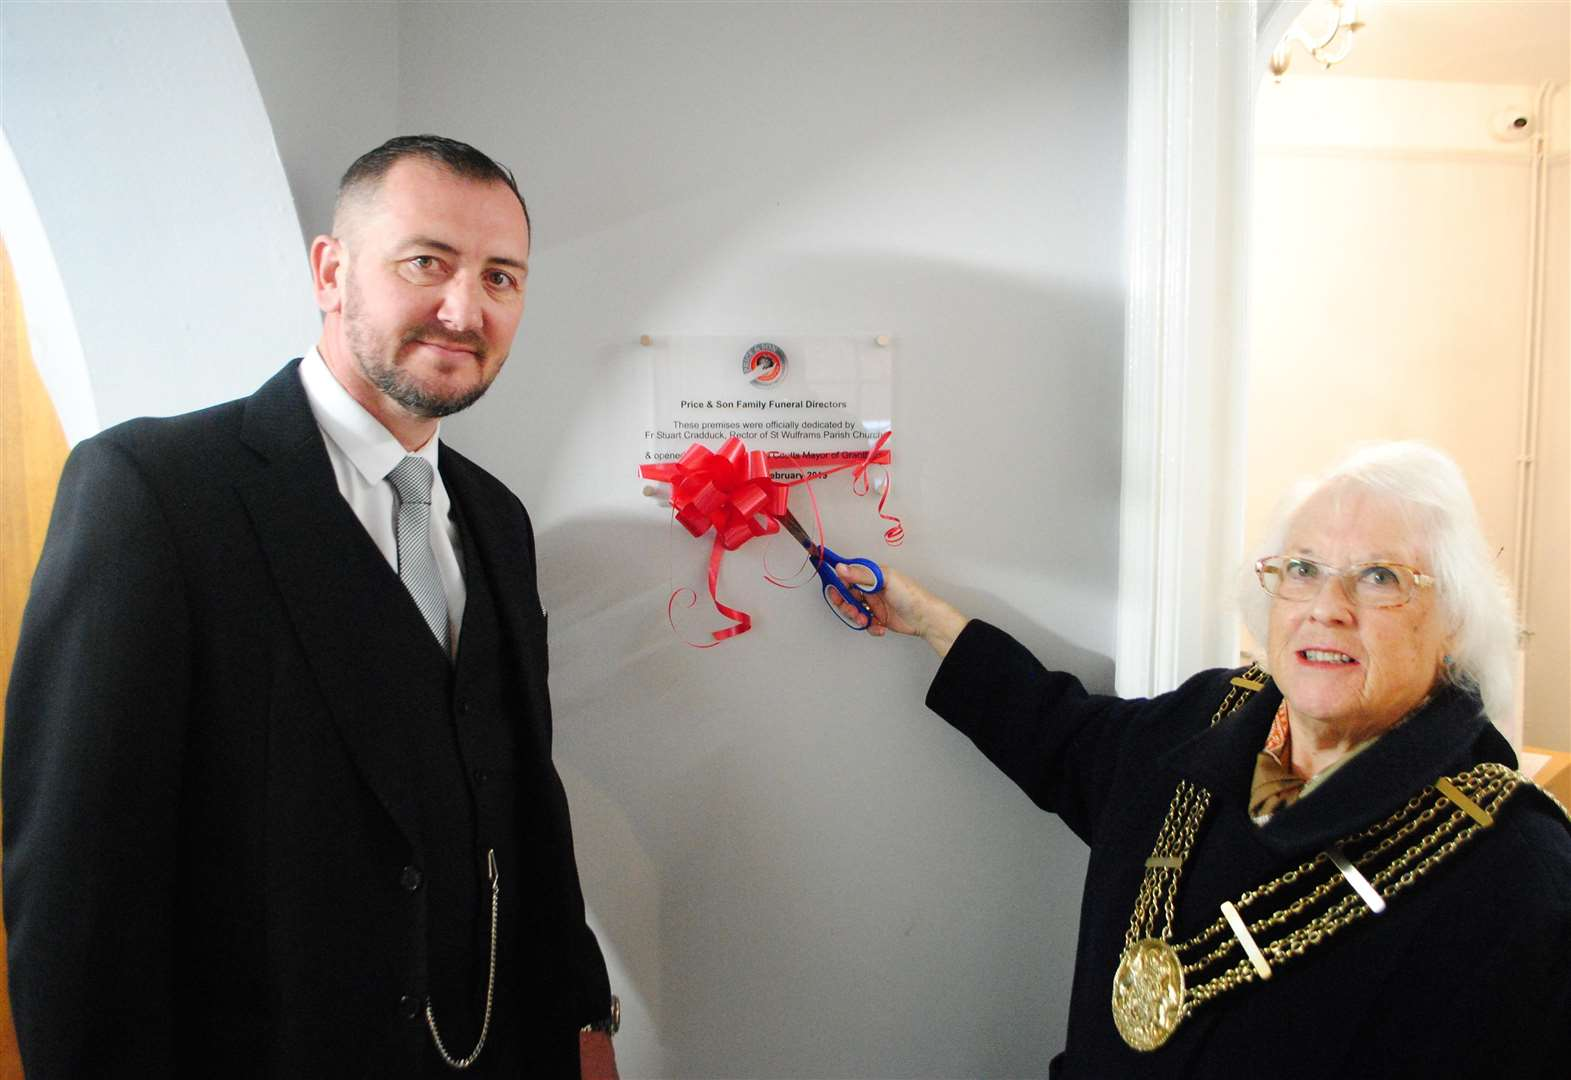 Funeral directors officially opens